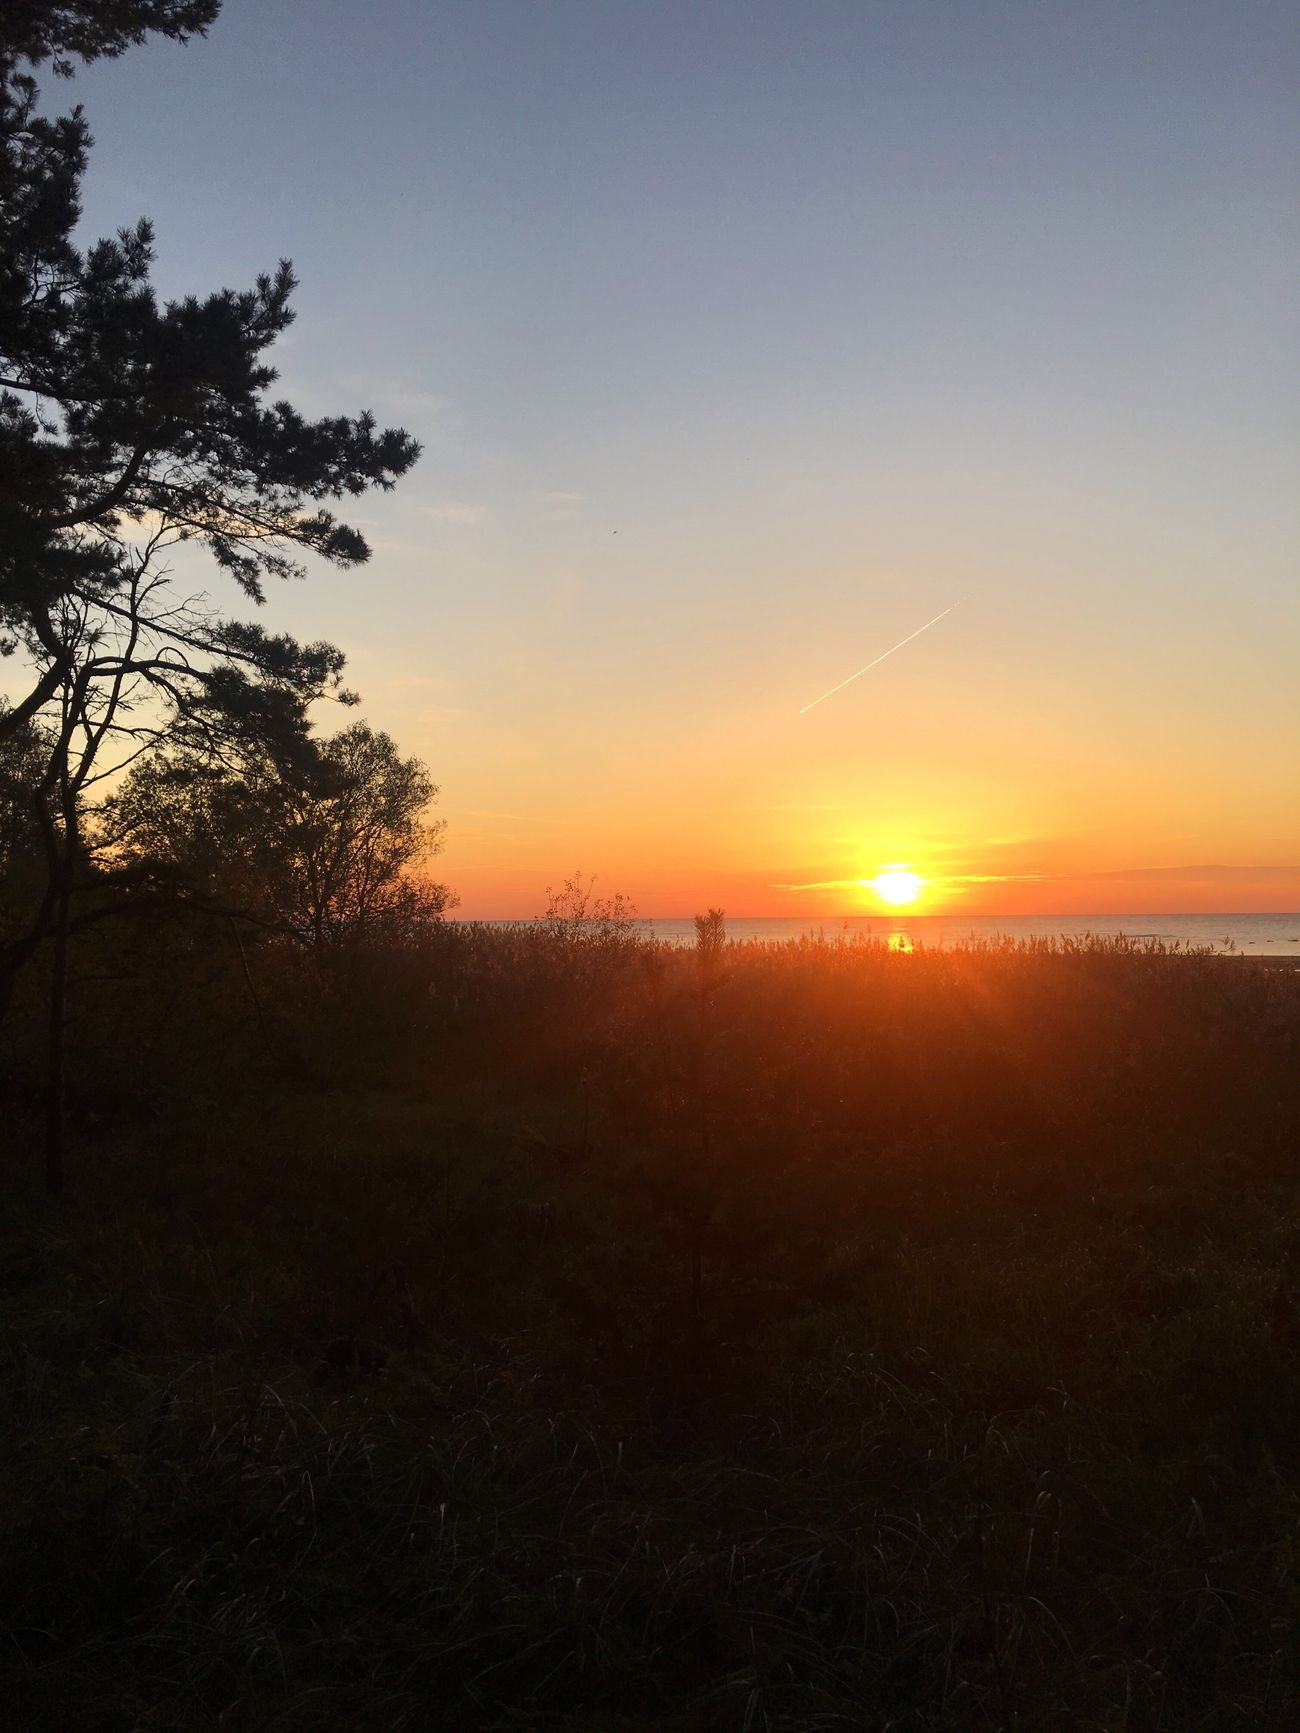 Sunset Baltic Sea Baltics2k16